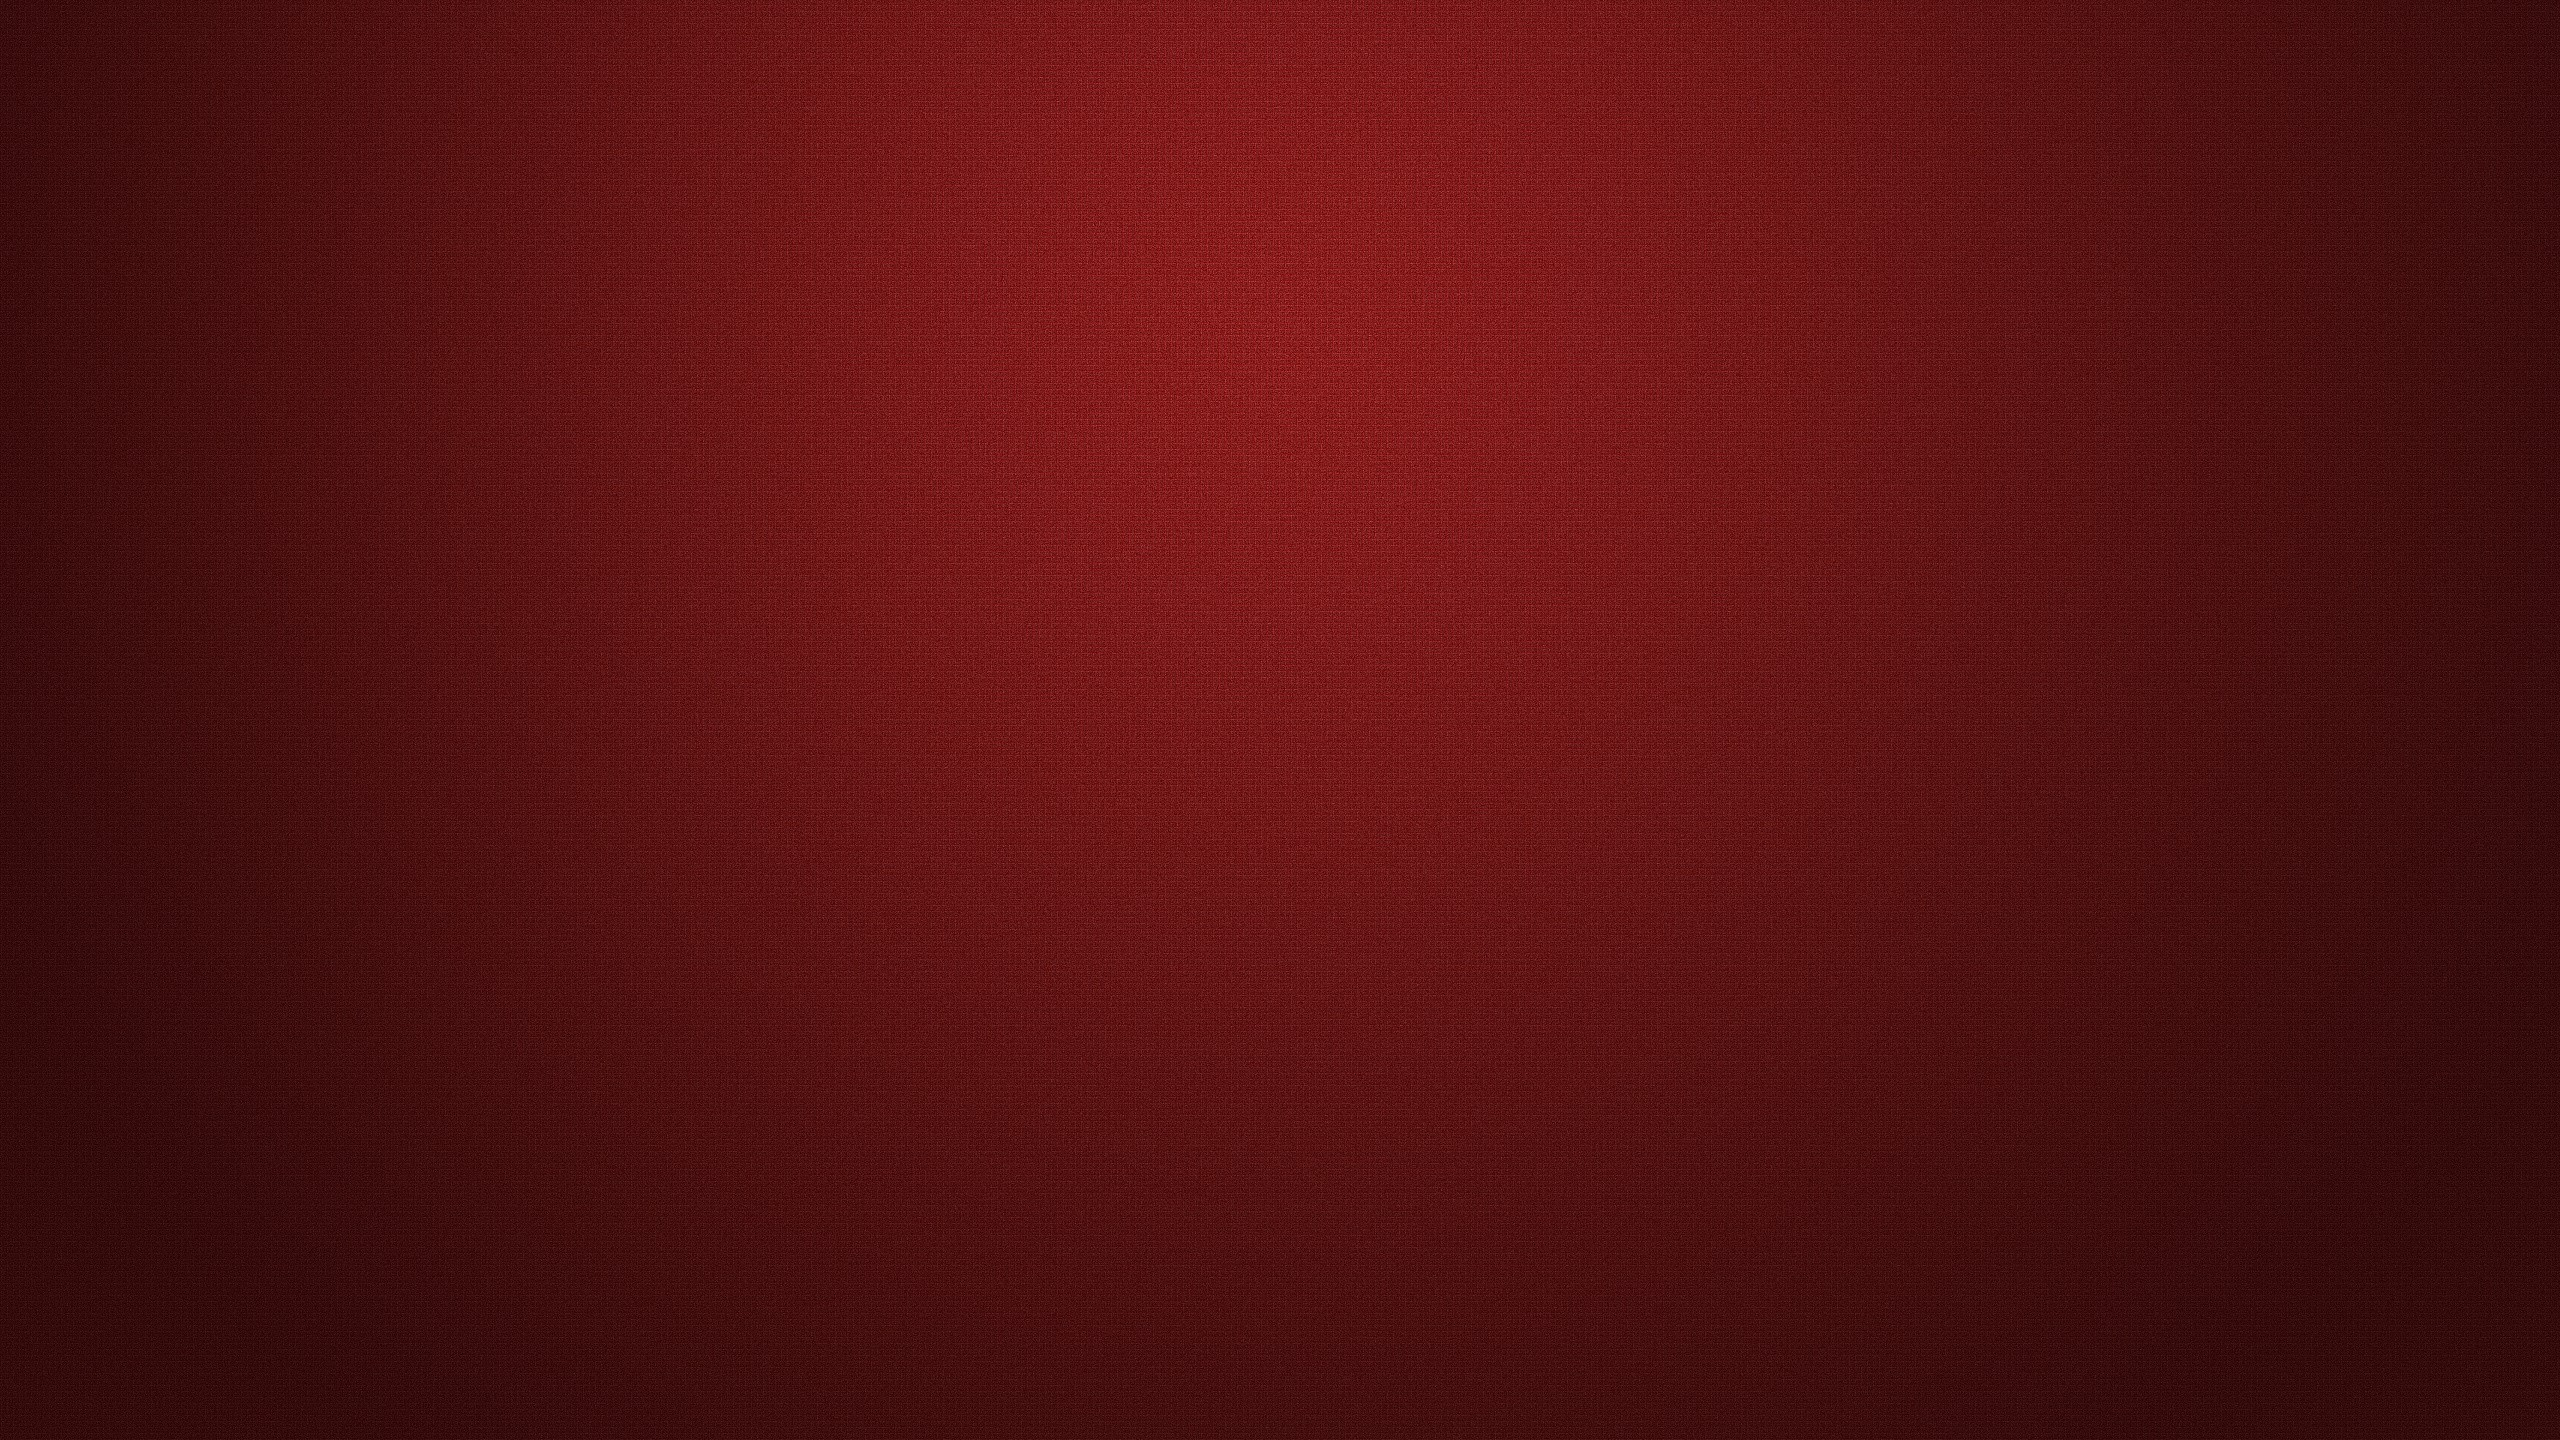 Red Texture Background ·① Download Free Awesome HD